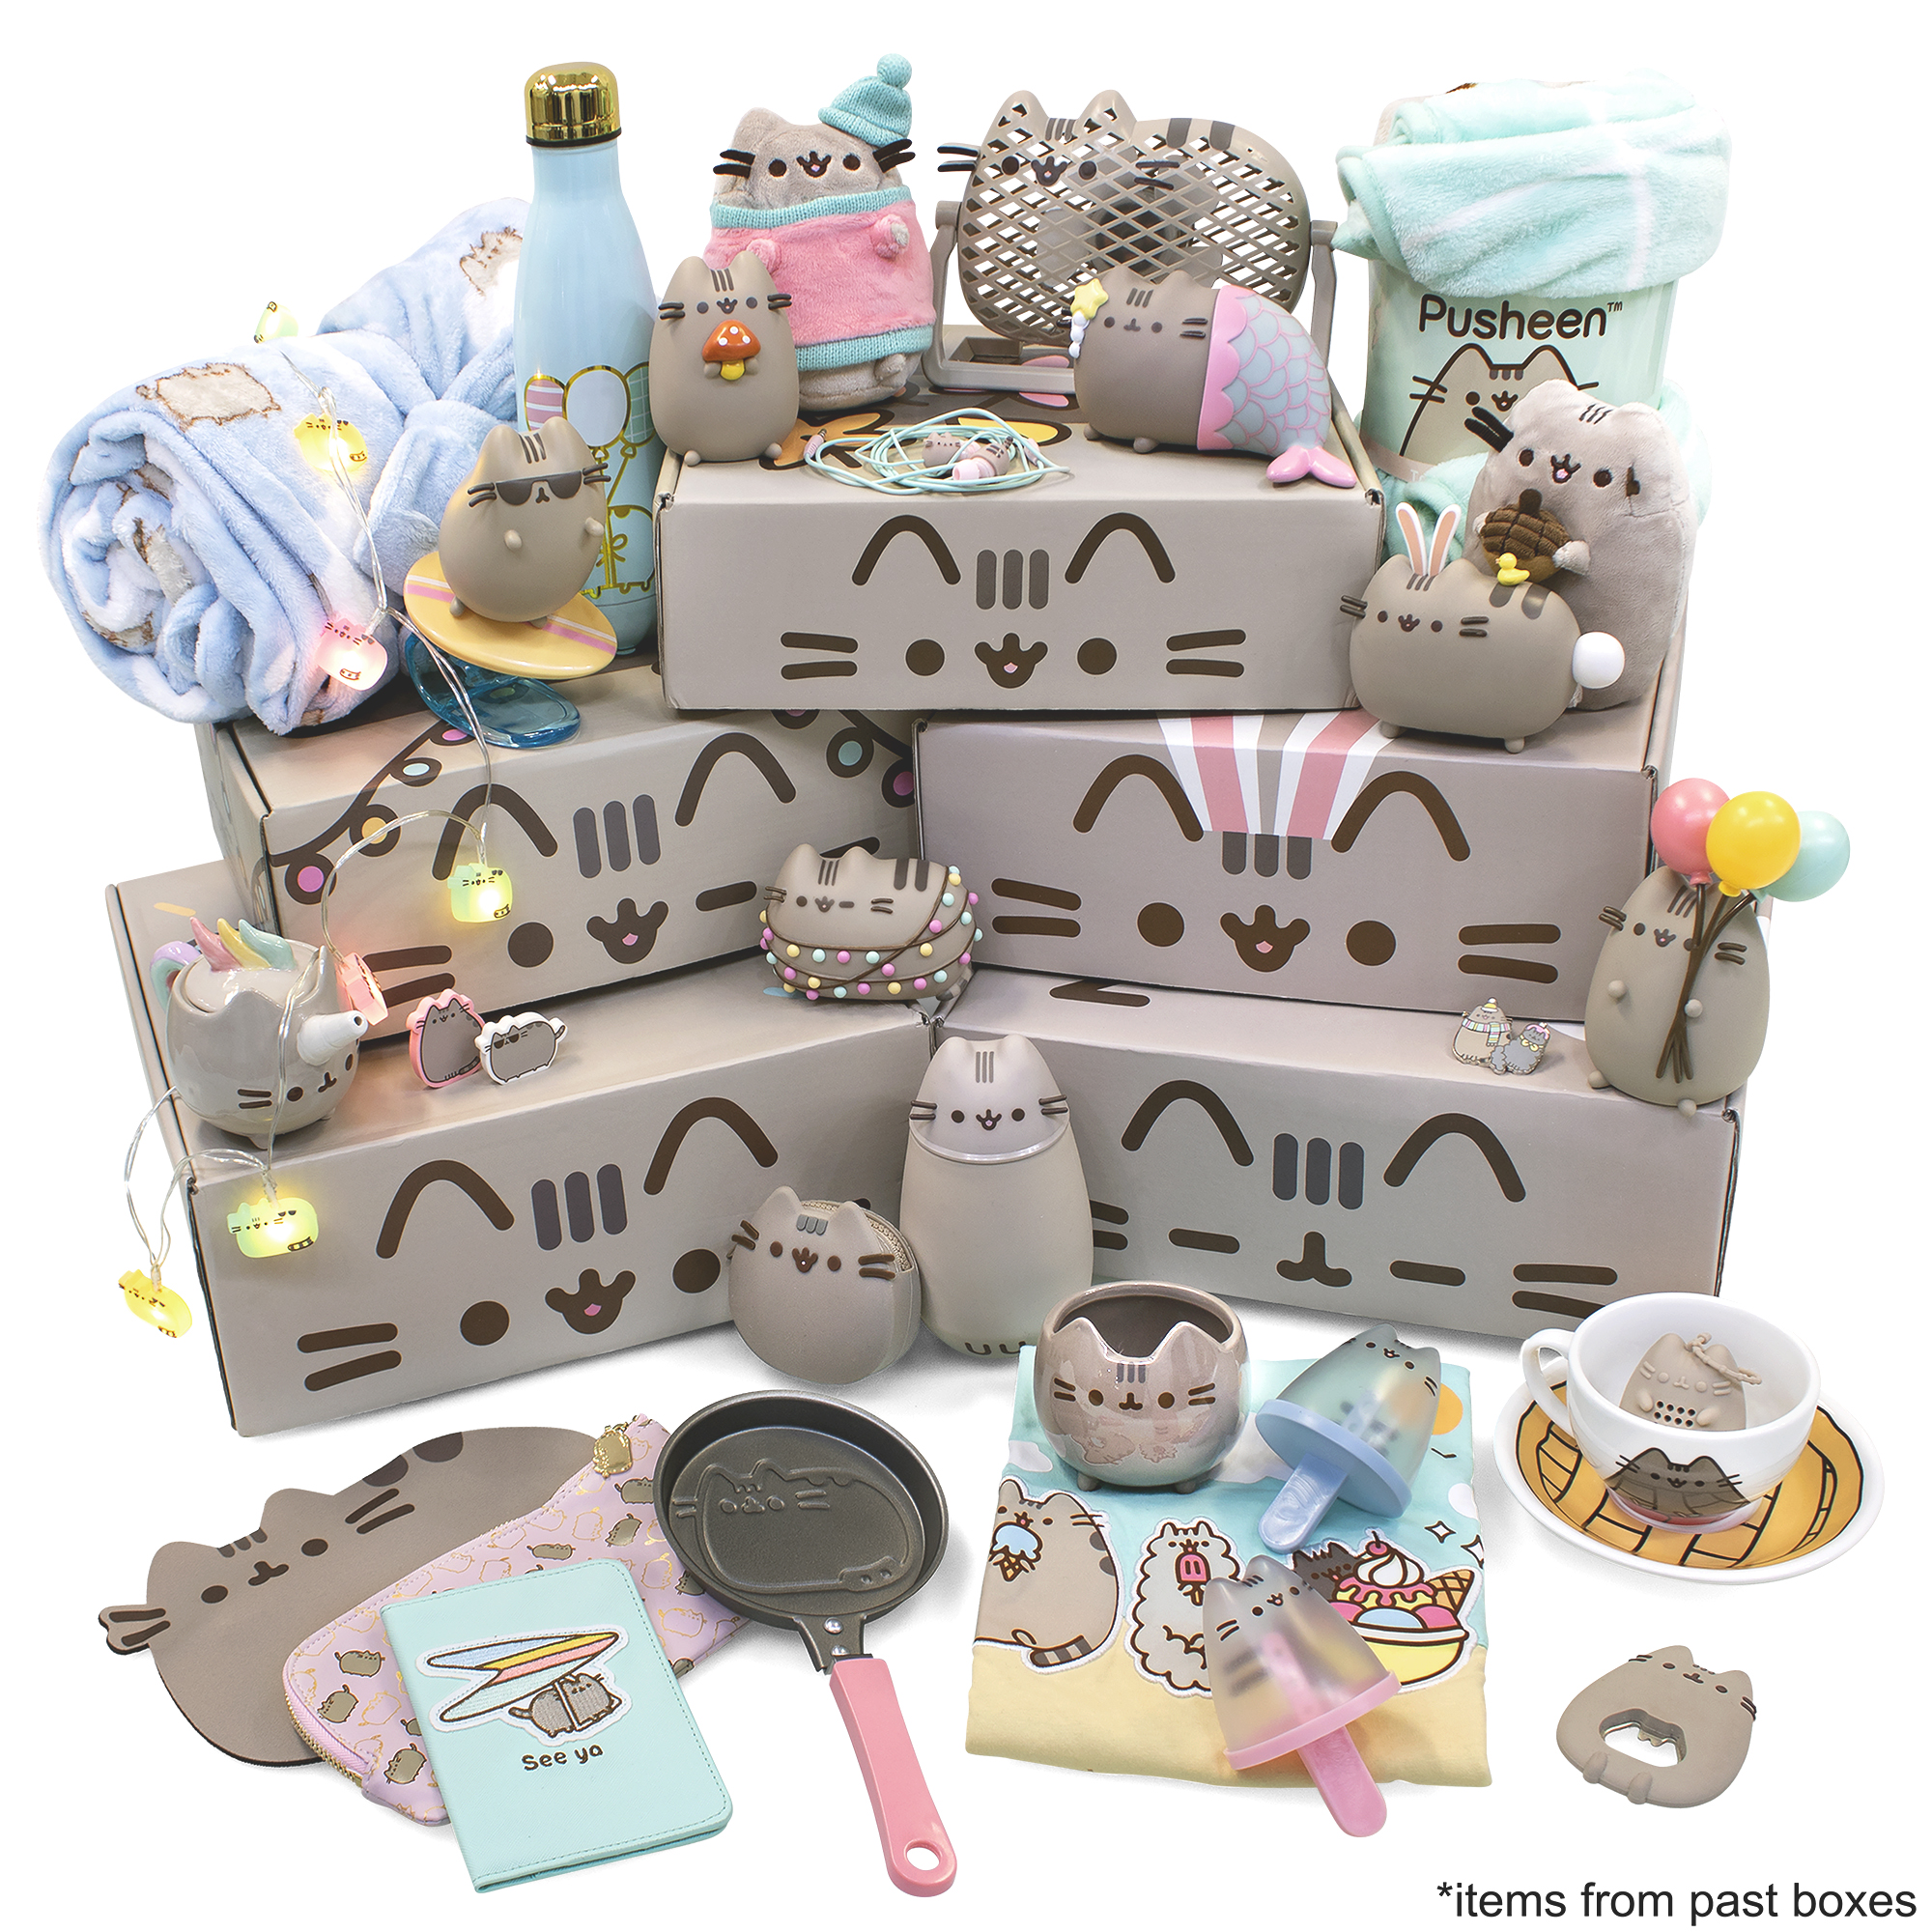 Pusheen Box - Officially Licensed Pusheen the Cat Mystery Subscription Box by Pusheen